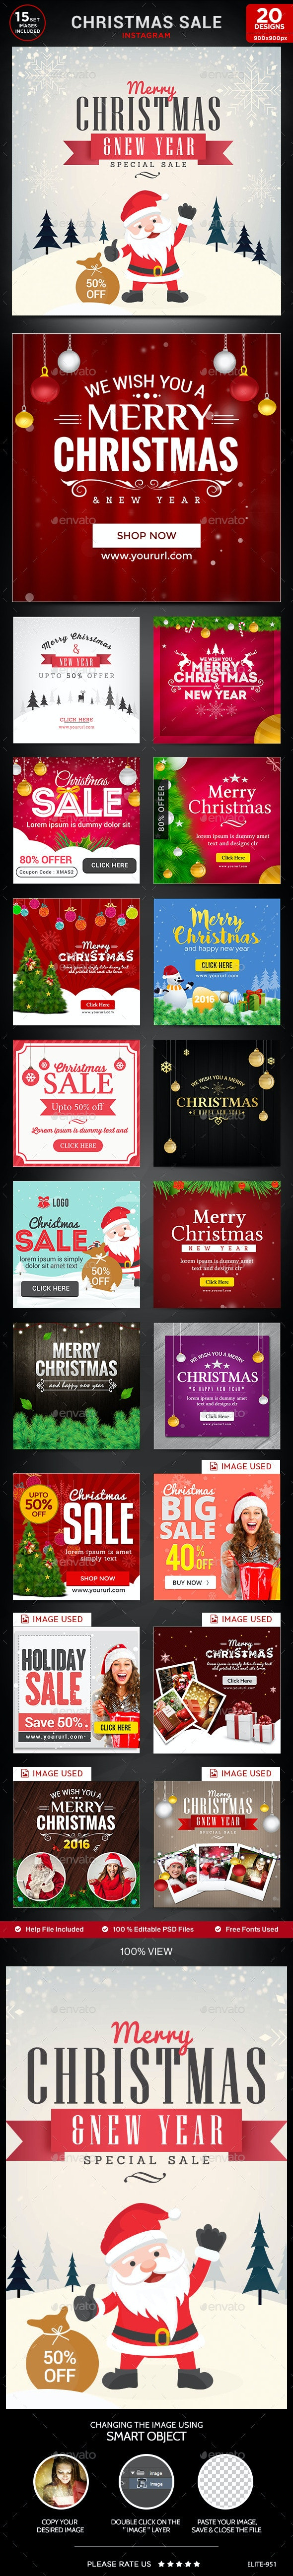 Christmas Sale Instagram Templates - 20 Designs - Banners & Ads Web Elements